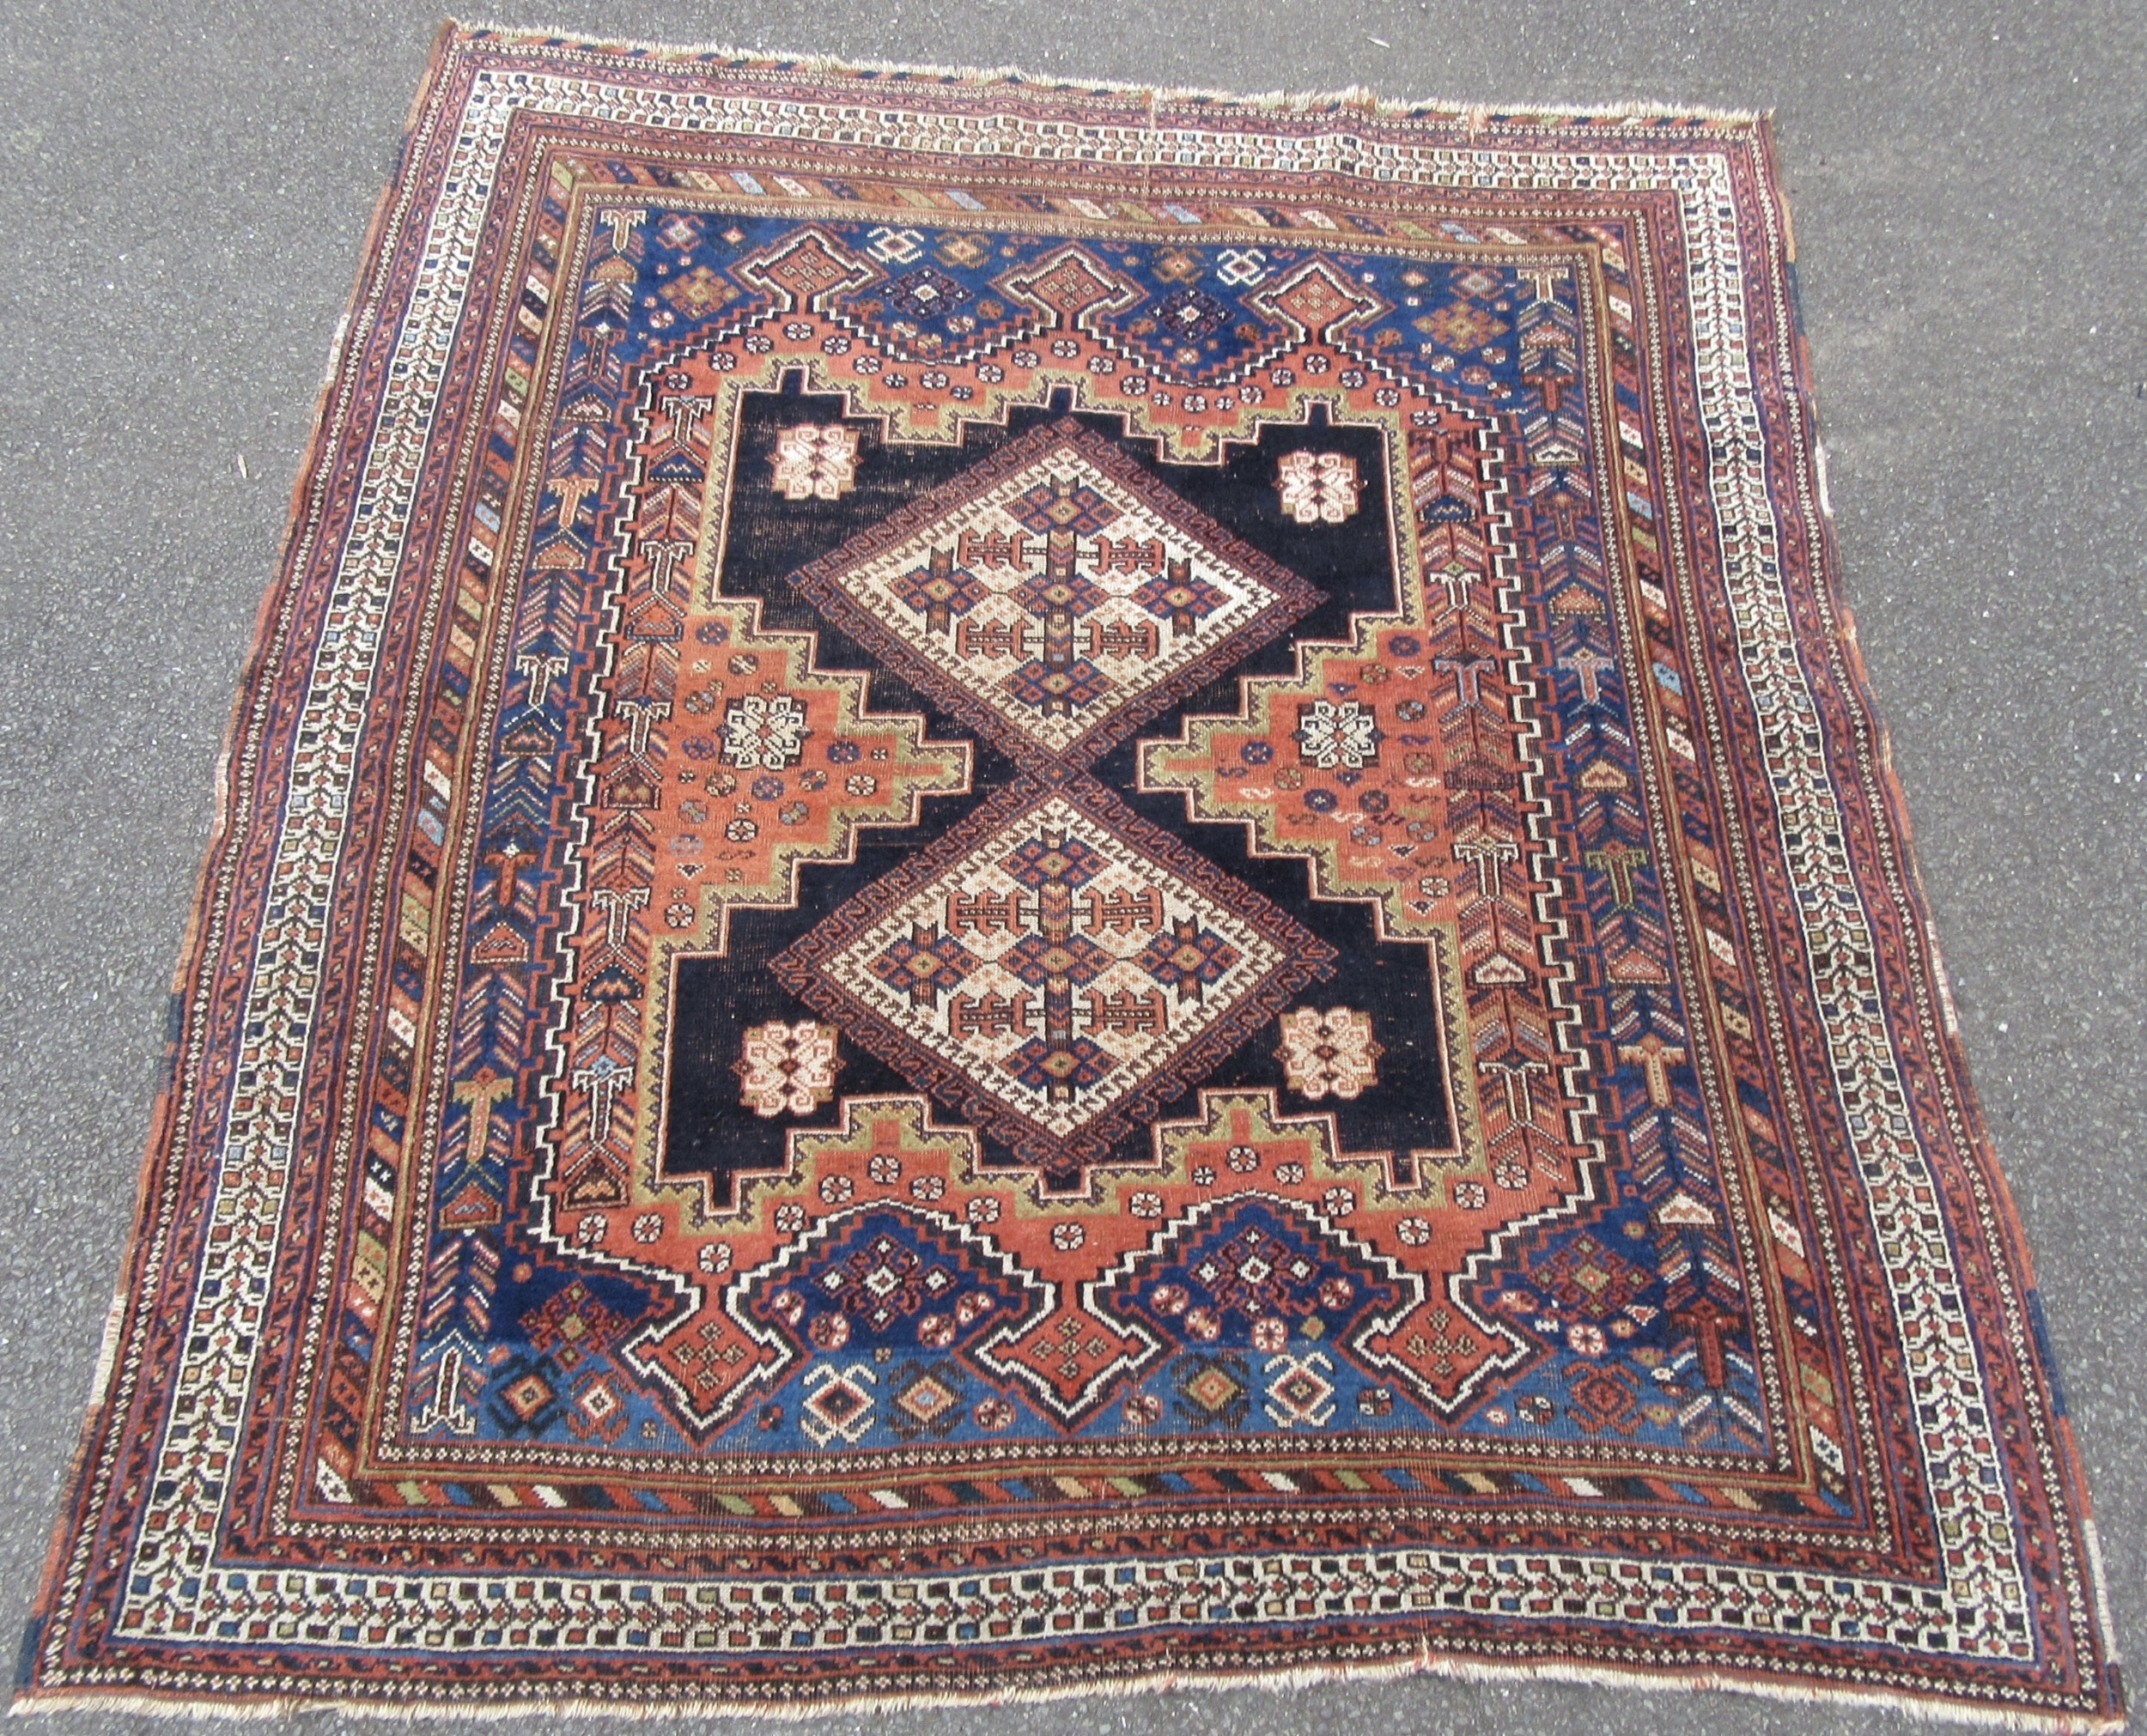 delightful antique south west persian afshar tribal rug circa 1900